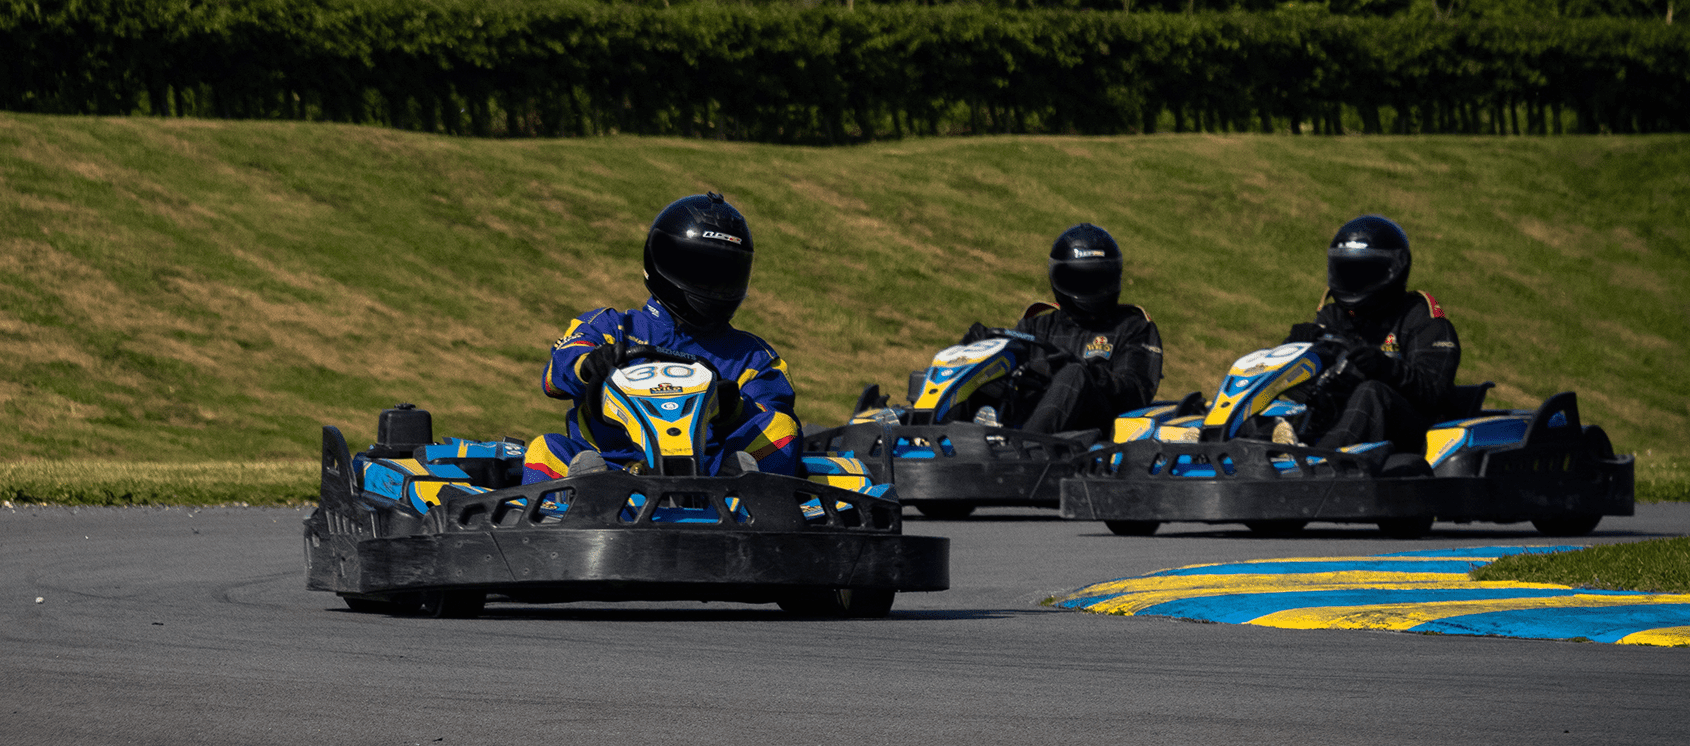 Outdoor Go Karting Newmarket, Suffolk Near Cambridge – Great Days Out